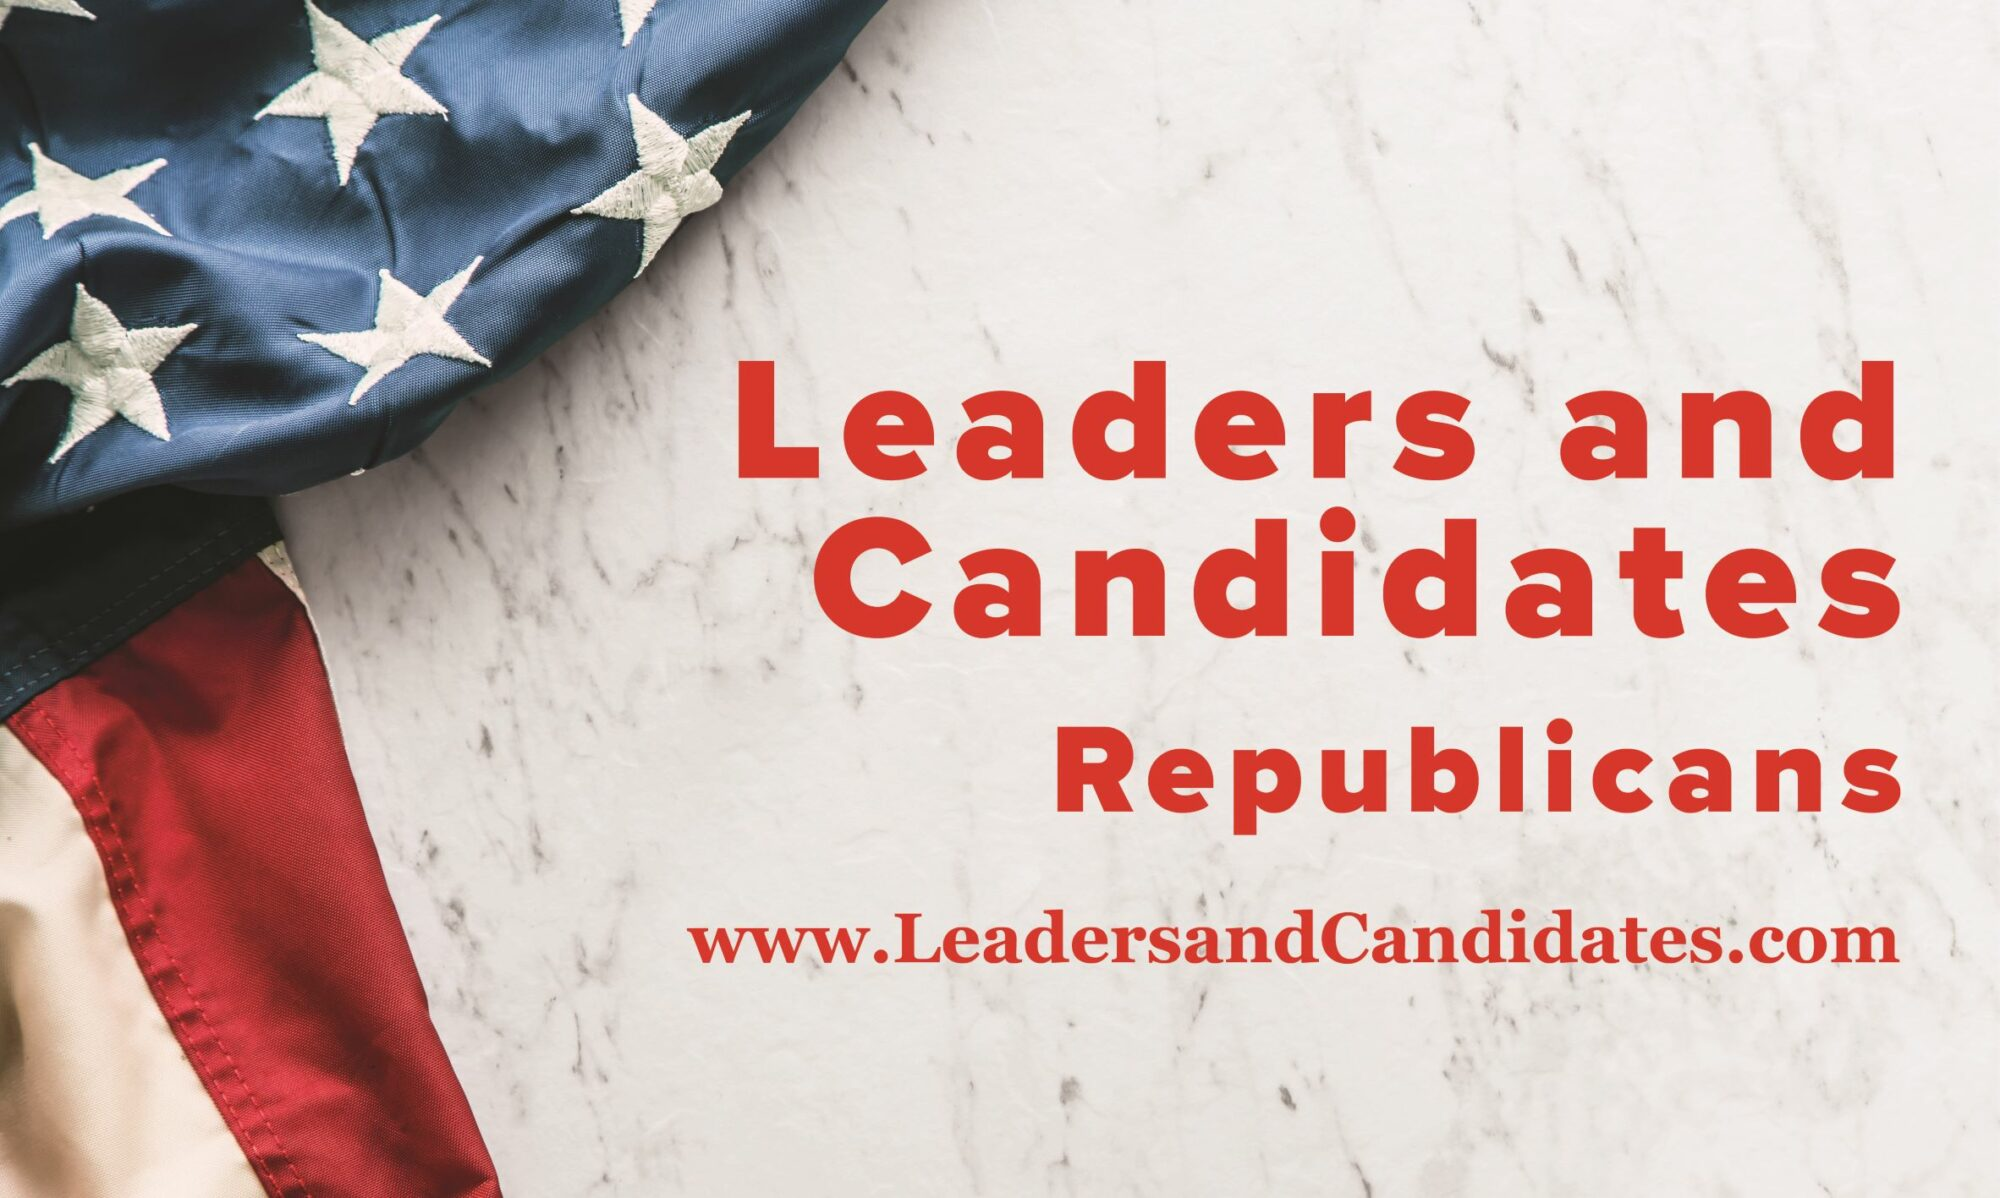 Leaders and Candidates